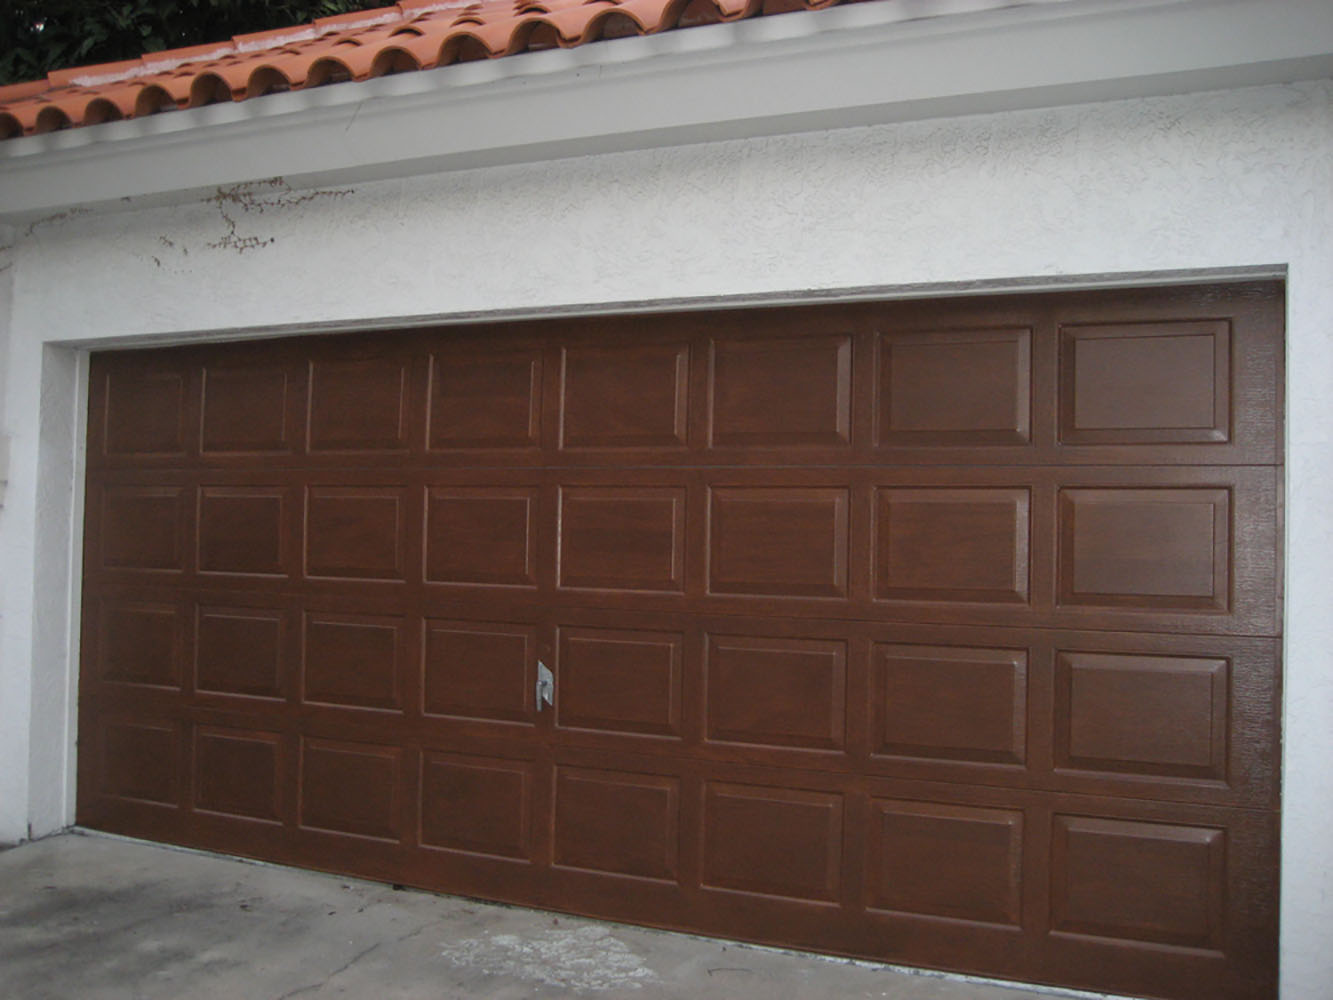 1000 #885143  And More SplatPaint Tampa Custom Artistic Finishes And Murals picture/photo Overhead Doors Tampa 35791333